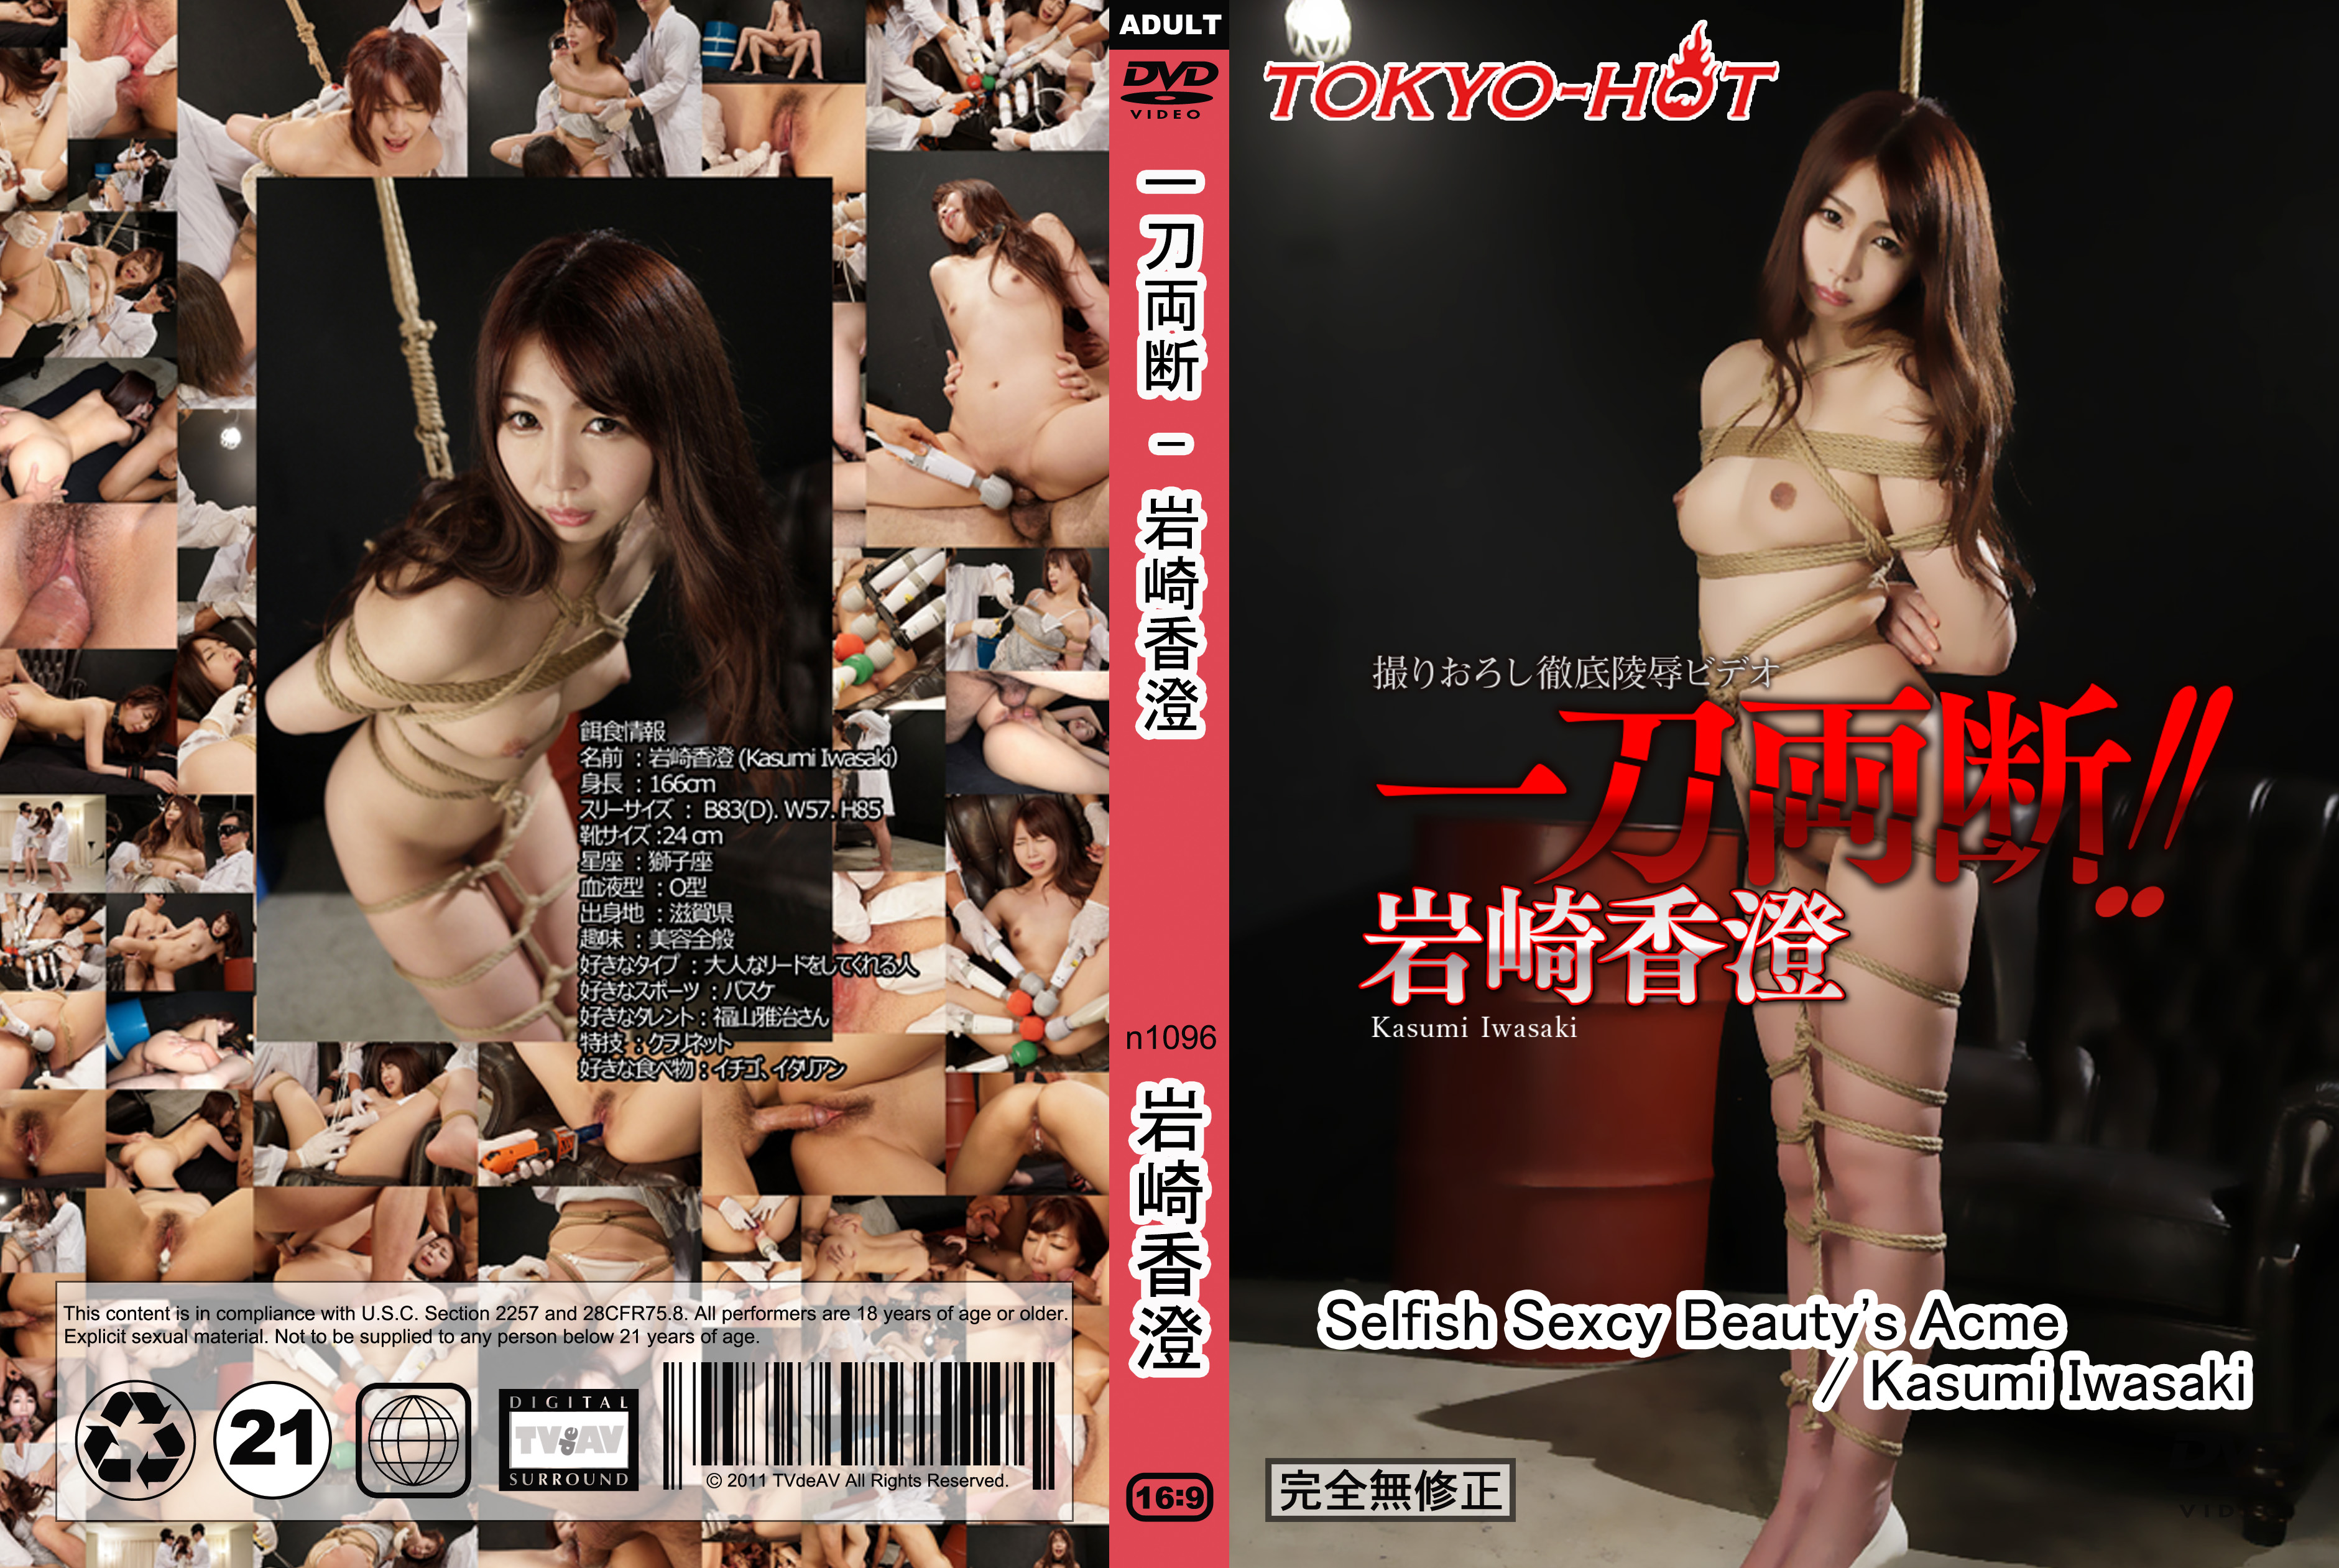 Xxx game sexcy image hd hentai pic